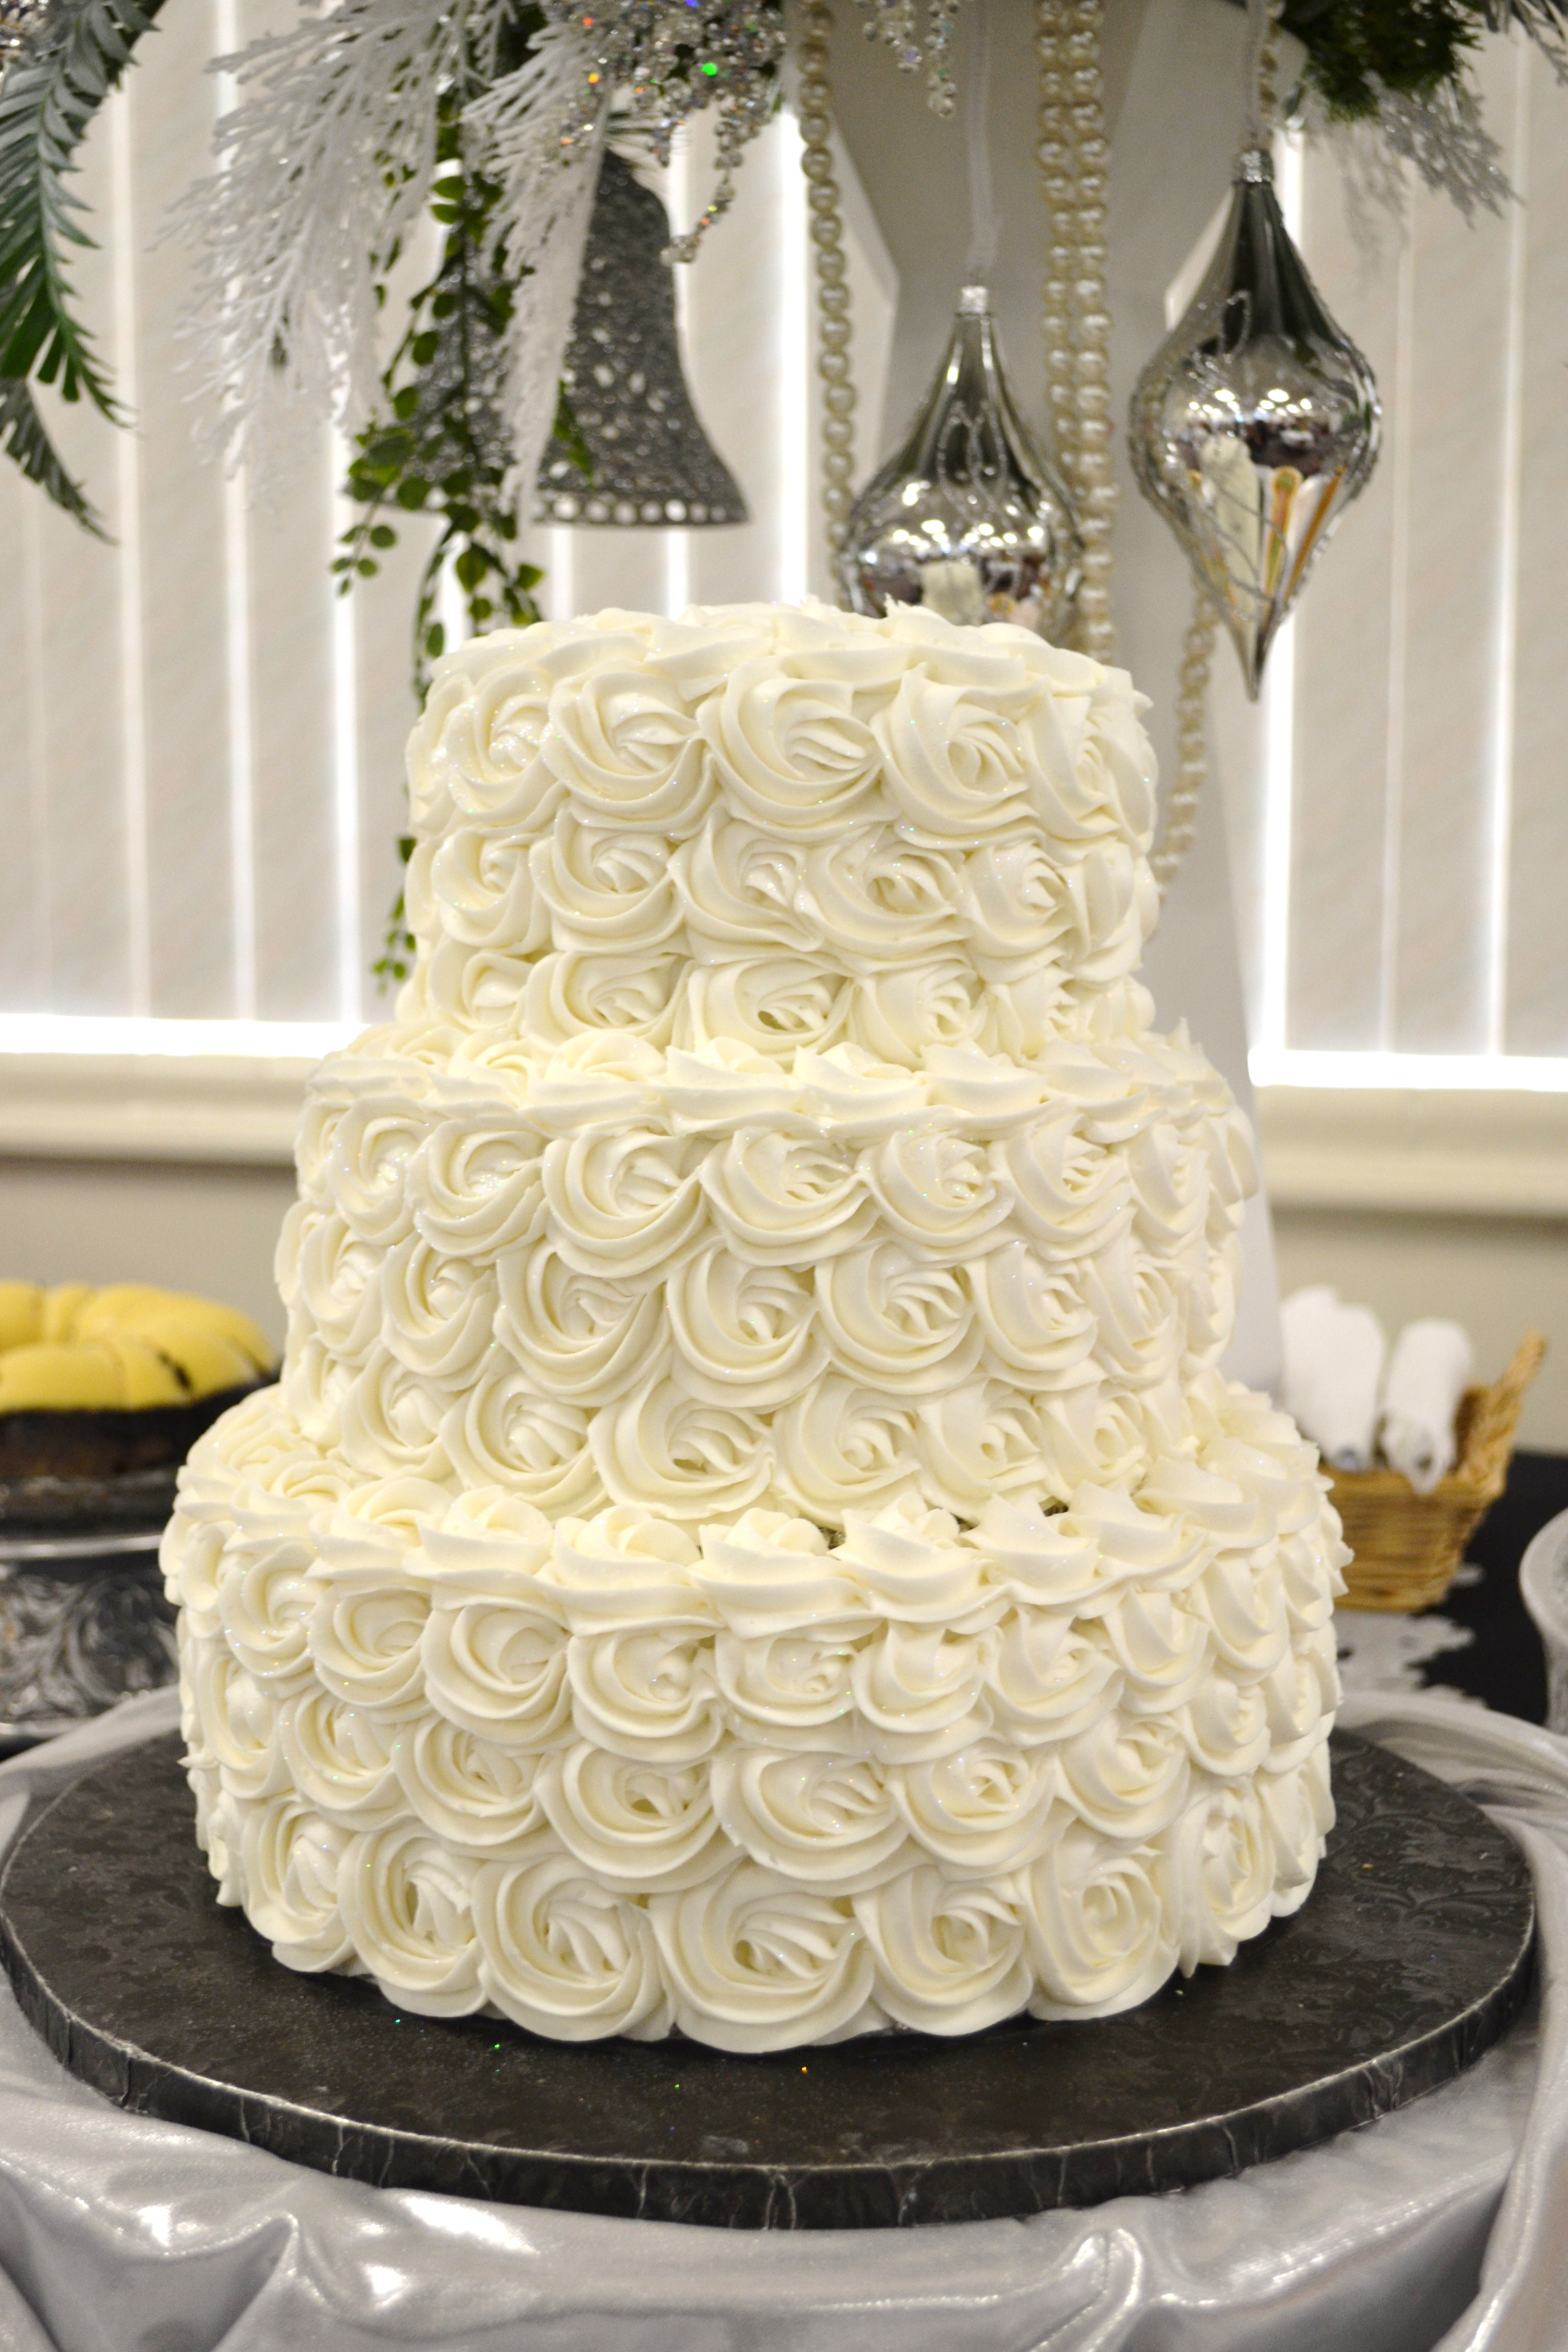 Wedding Tiered Cakes  3 tiered wedding cakes idea in 2017